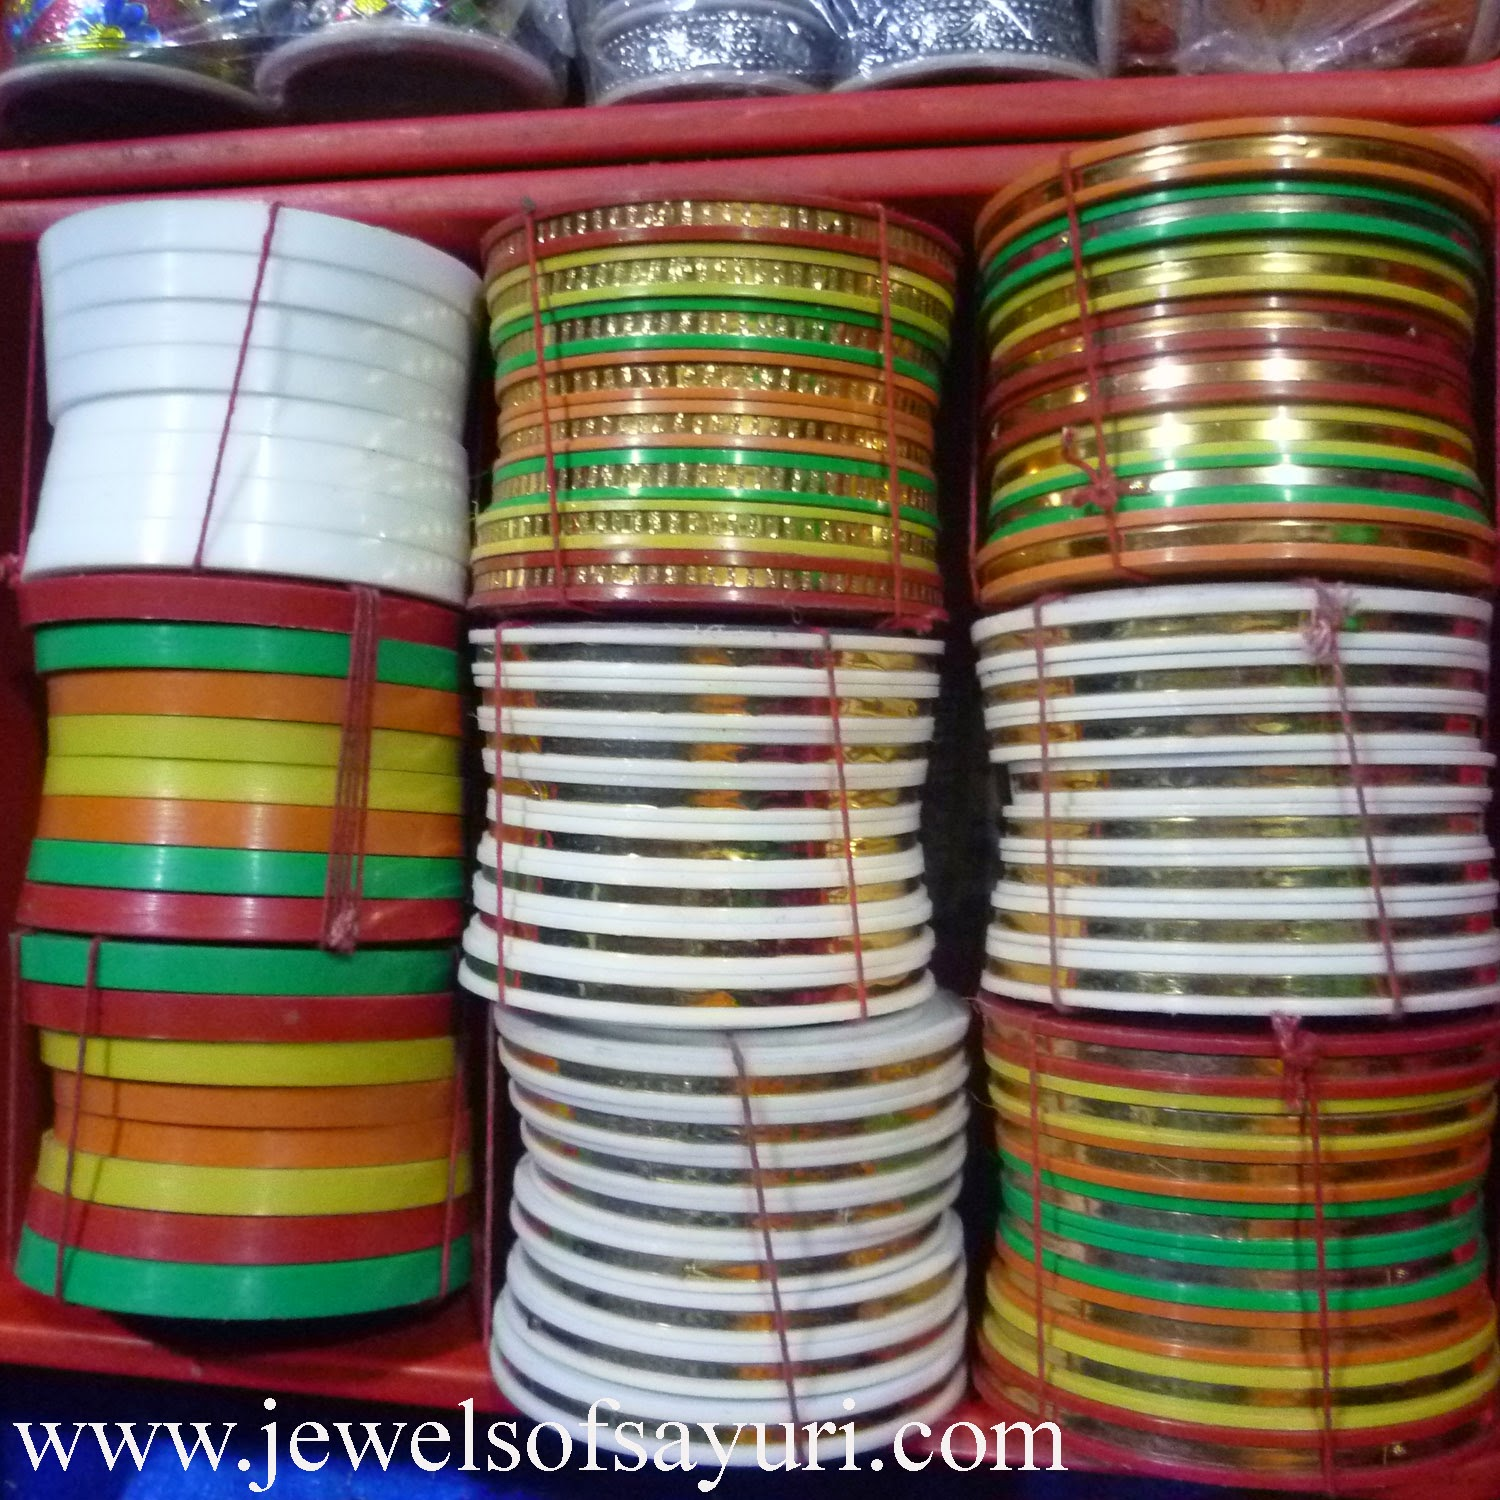 Rajasthani Lac Jewellery Buy Awesome Jewellery At Ahmedabad Jewels Of Sayuri